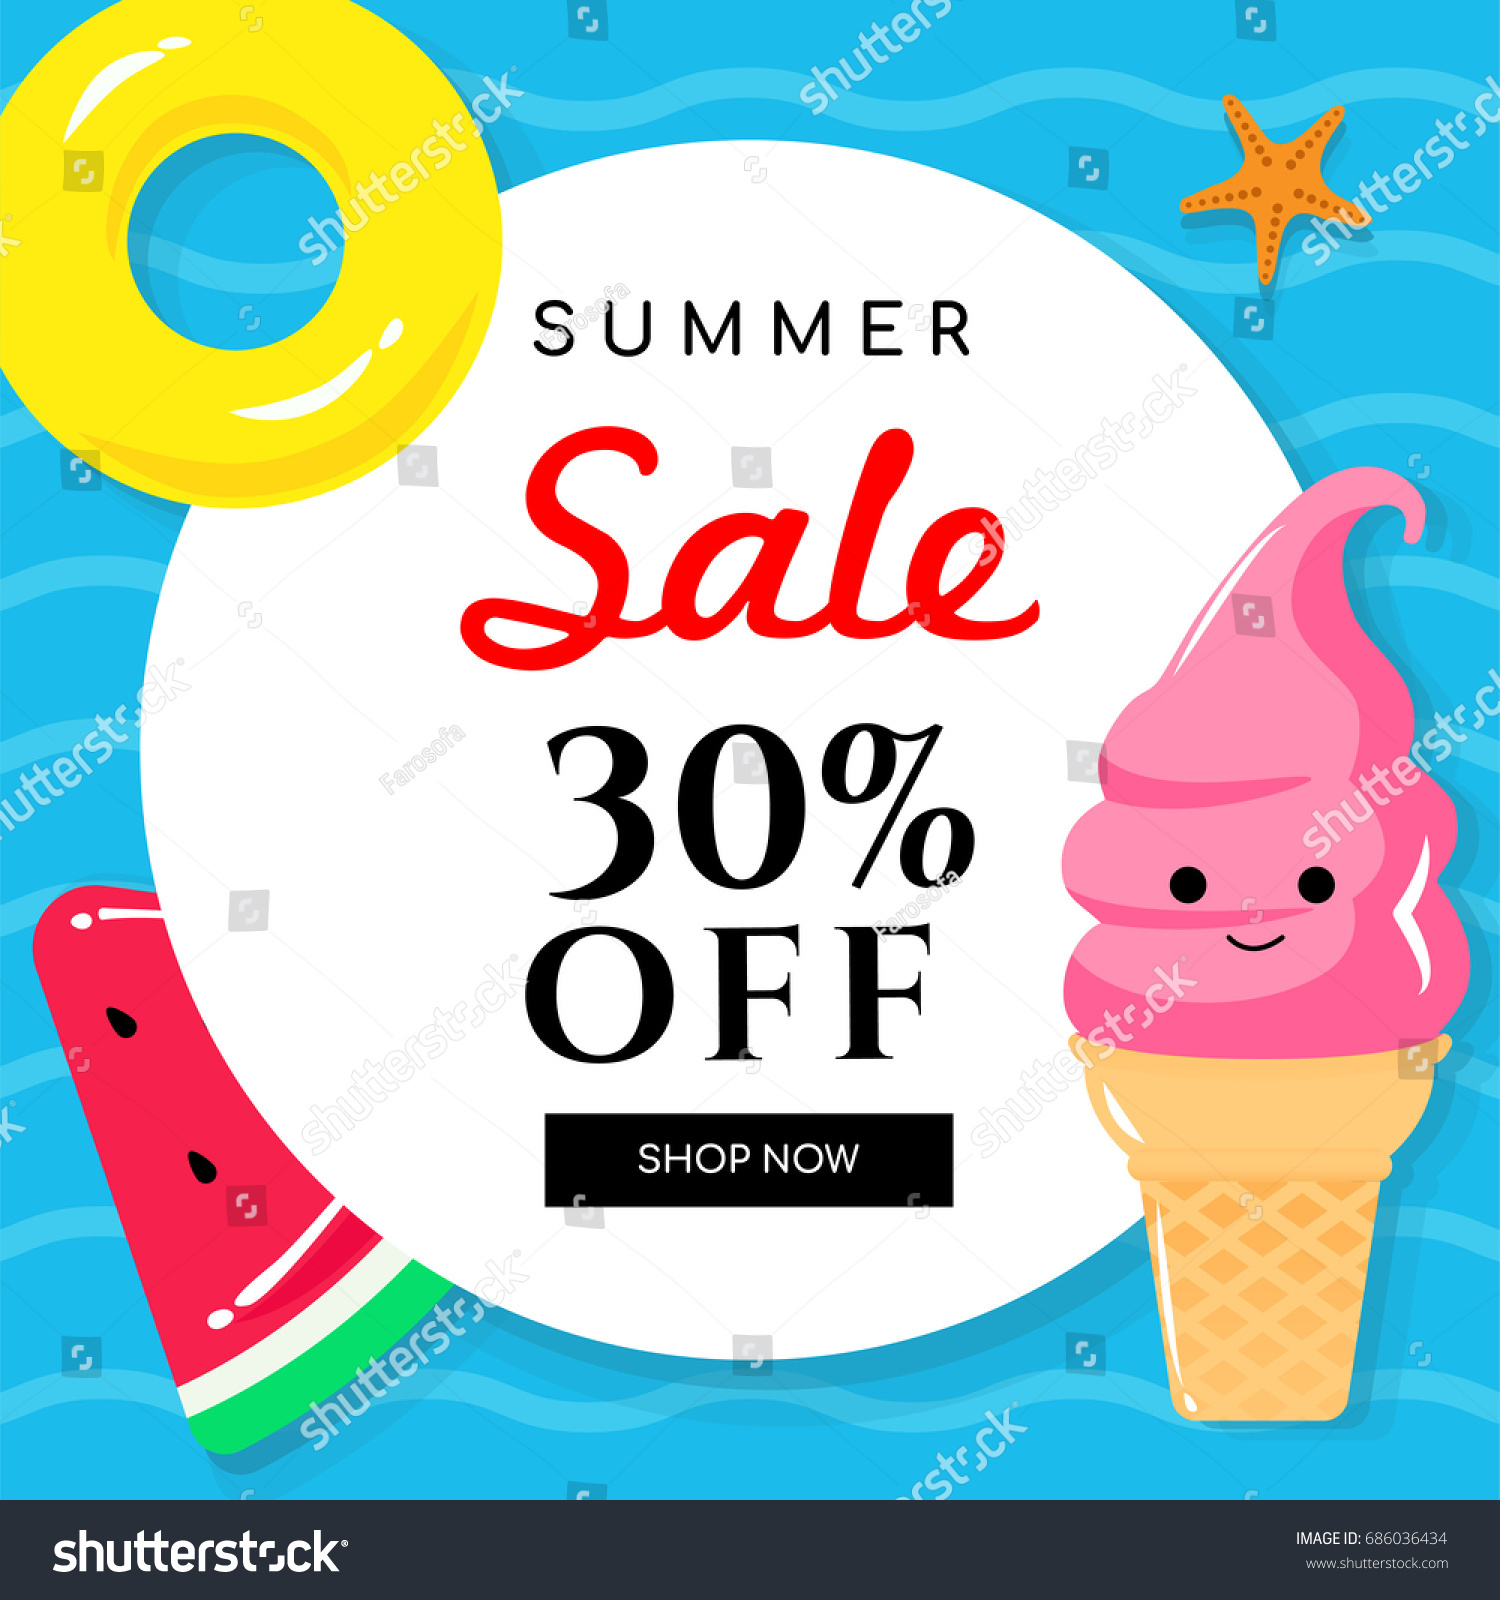 Summer Sale Vector Illustration Pool Toys Stock Vector